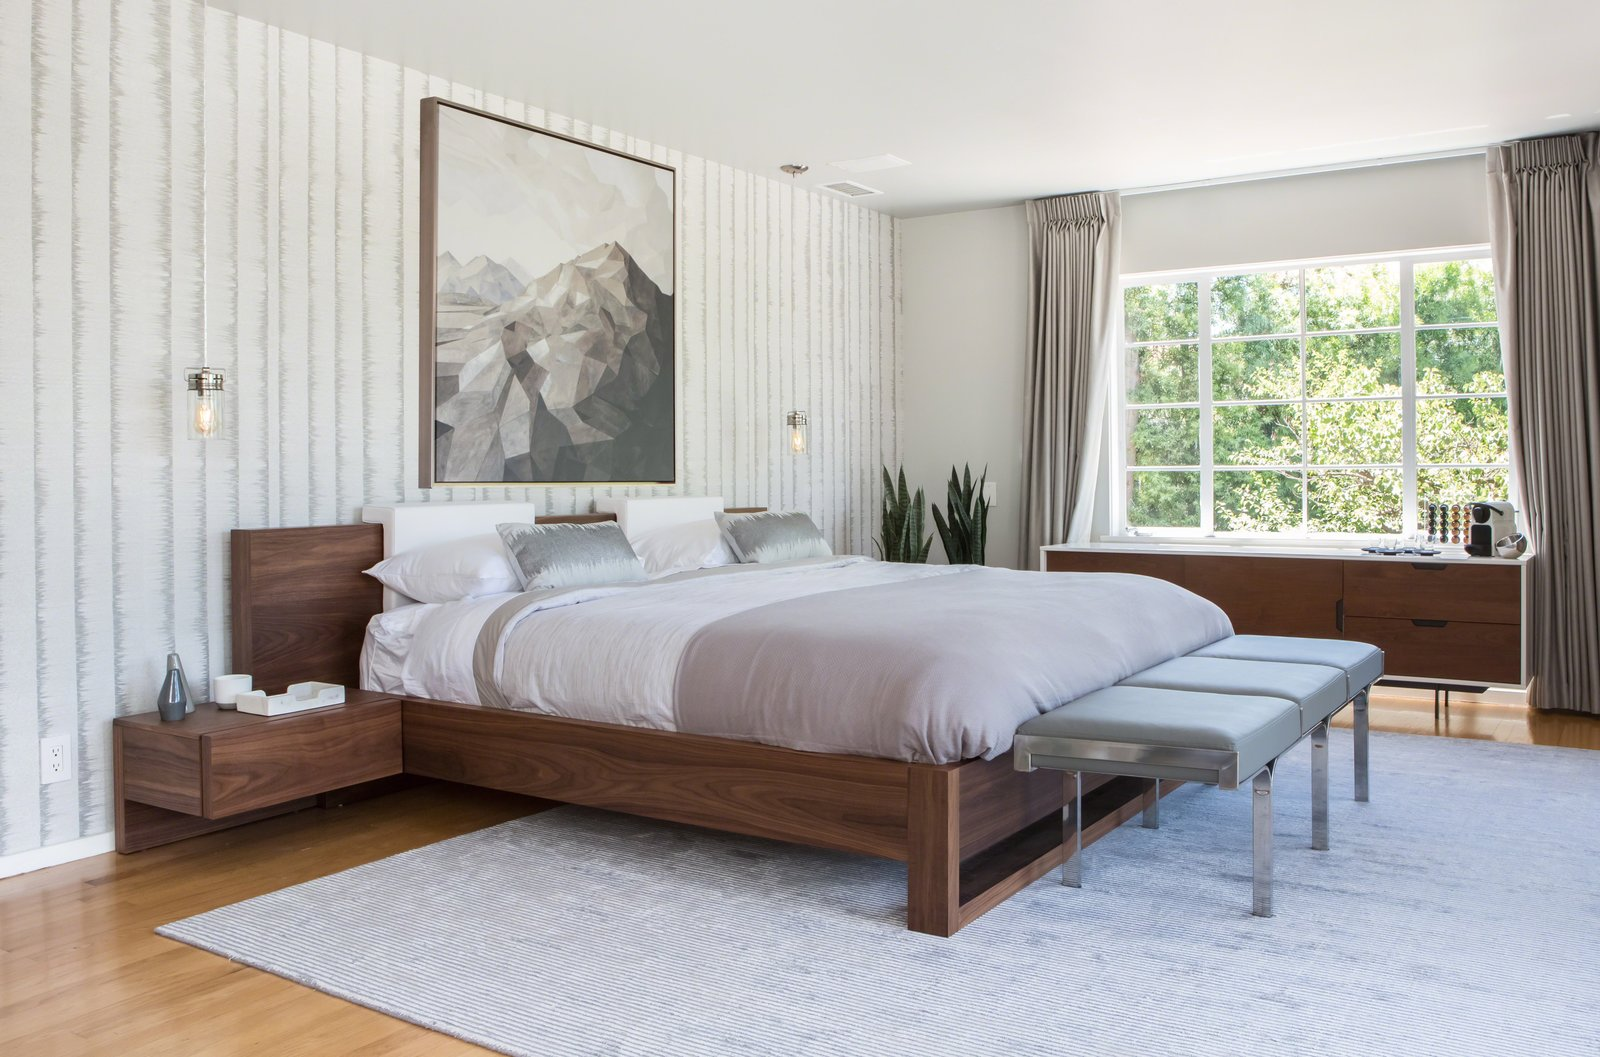 Bedroom, Medium Hardwood, Night Stands, Bench, Dresser, Pendant, Ceiling, and Bed  Best Bedroom Dresser Night Stands Photos from Lake Hollywood